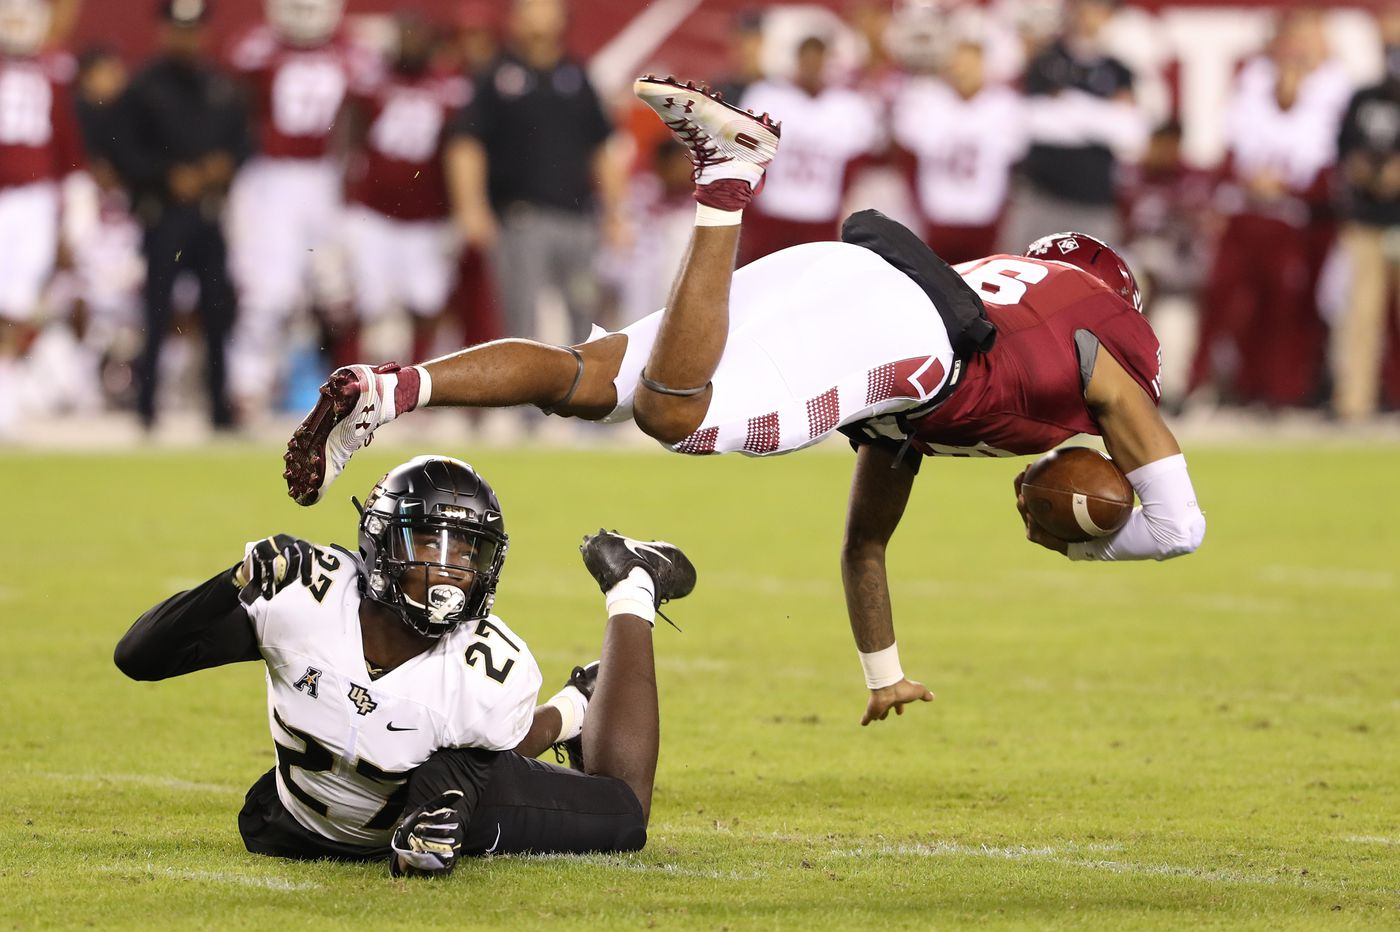 Hard questions pop up after Temple's UCF disaster | Mike Jensen